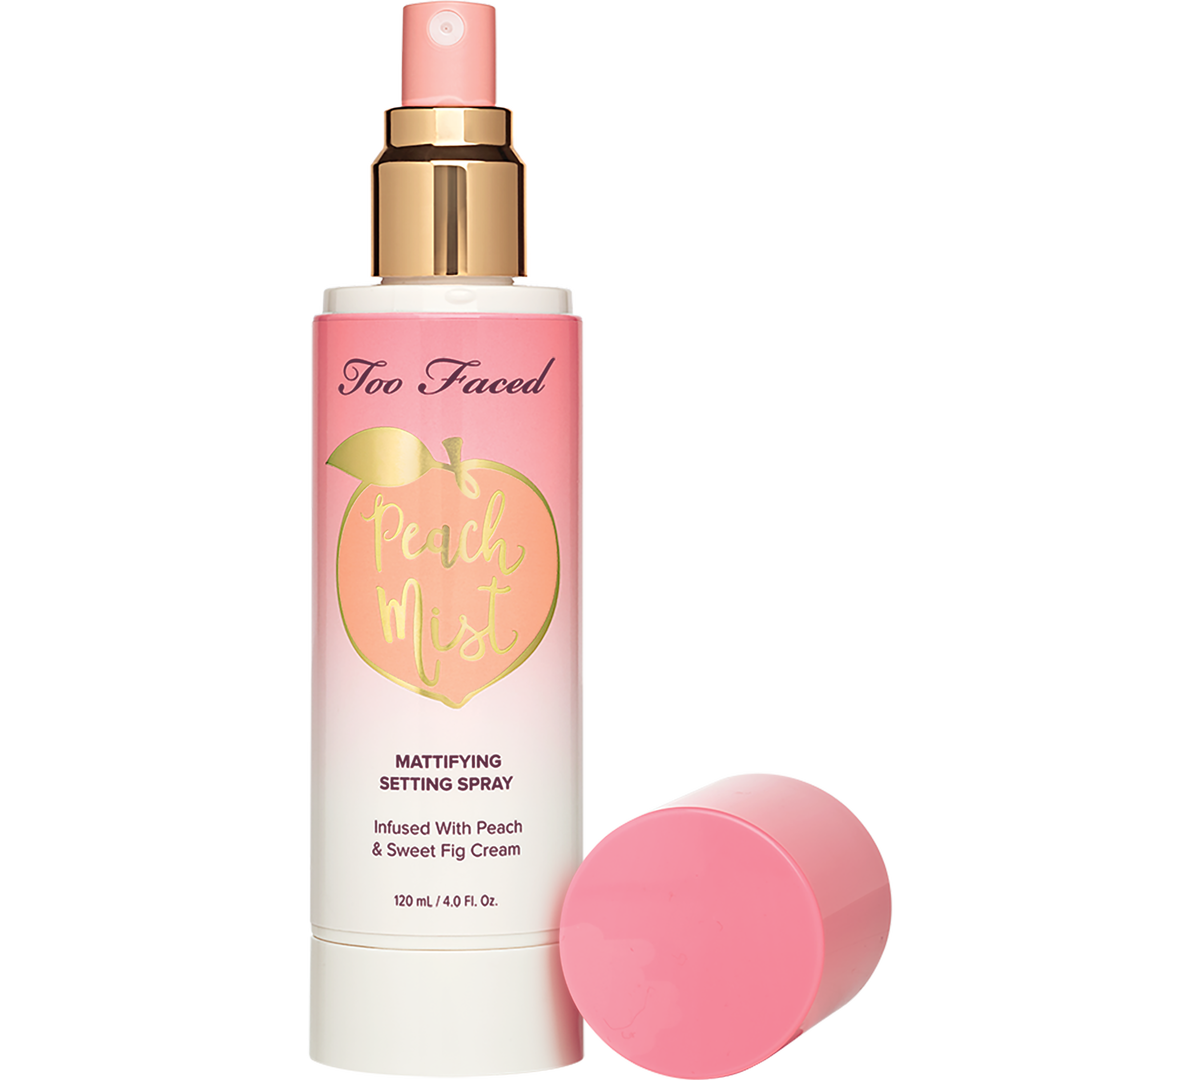 TOO FACED Peach Mist Setting Spray 120nl